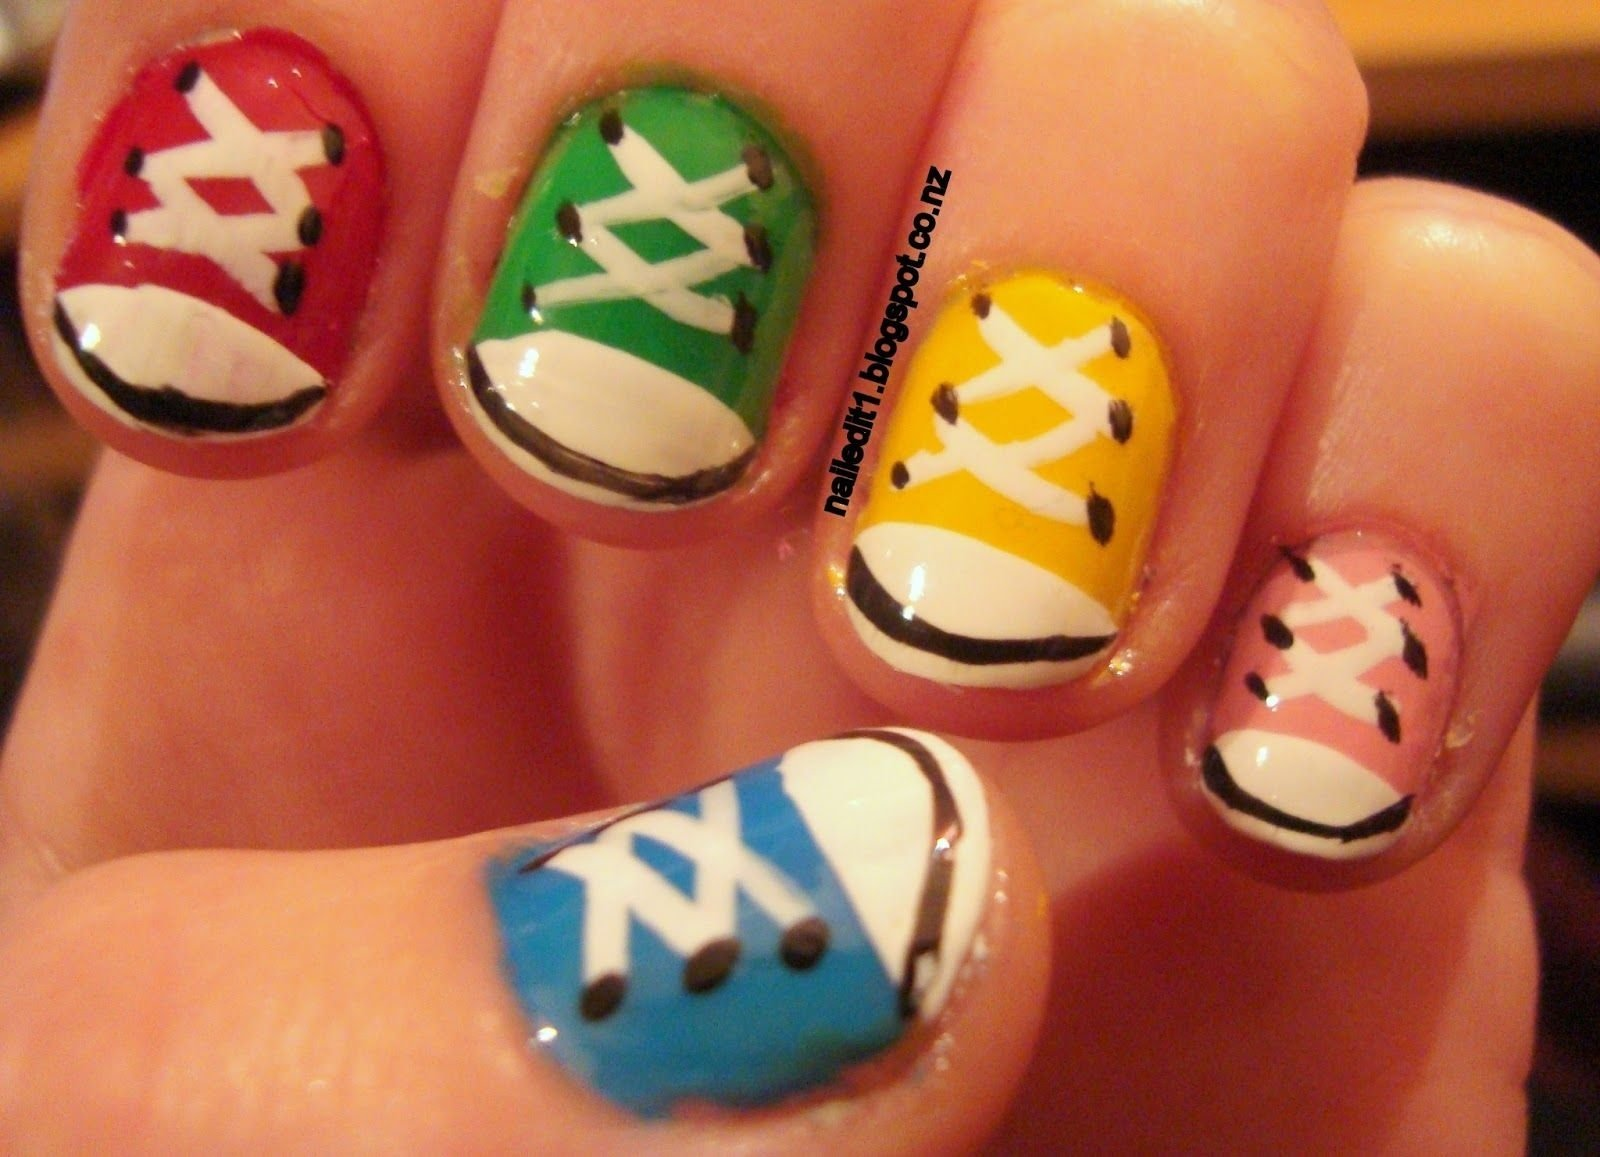 simple nail designs for short nails - this is totally me!!! hate